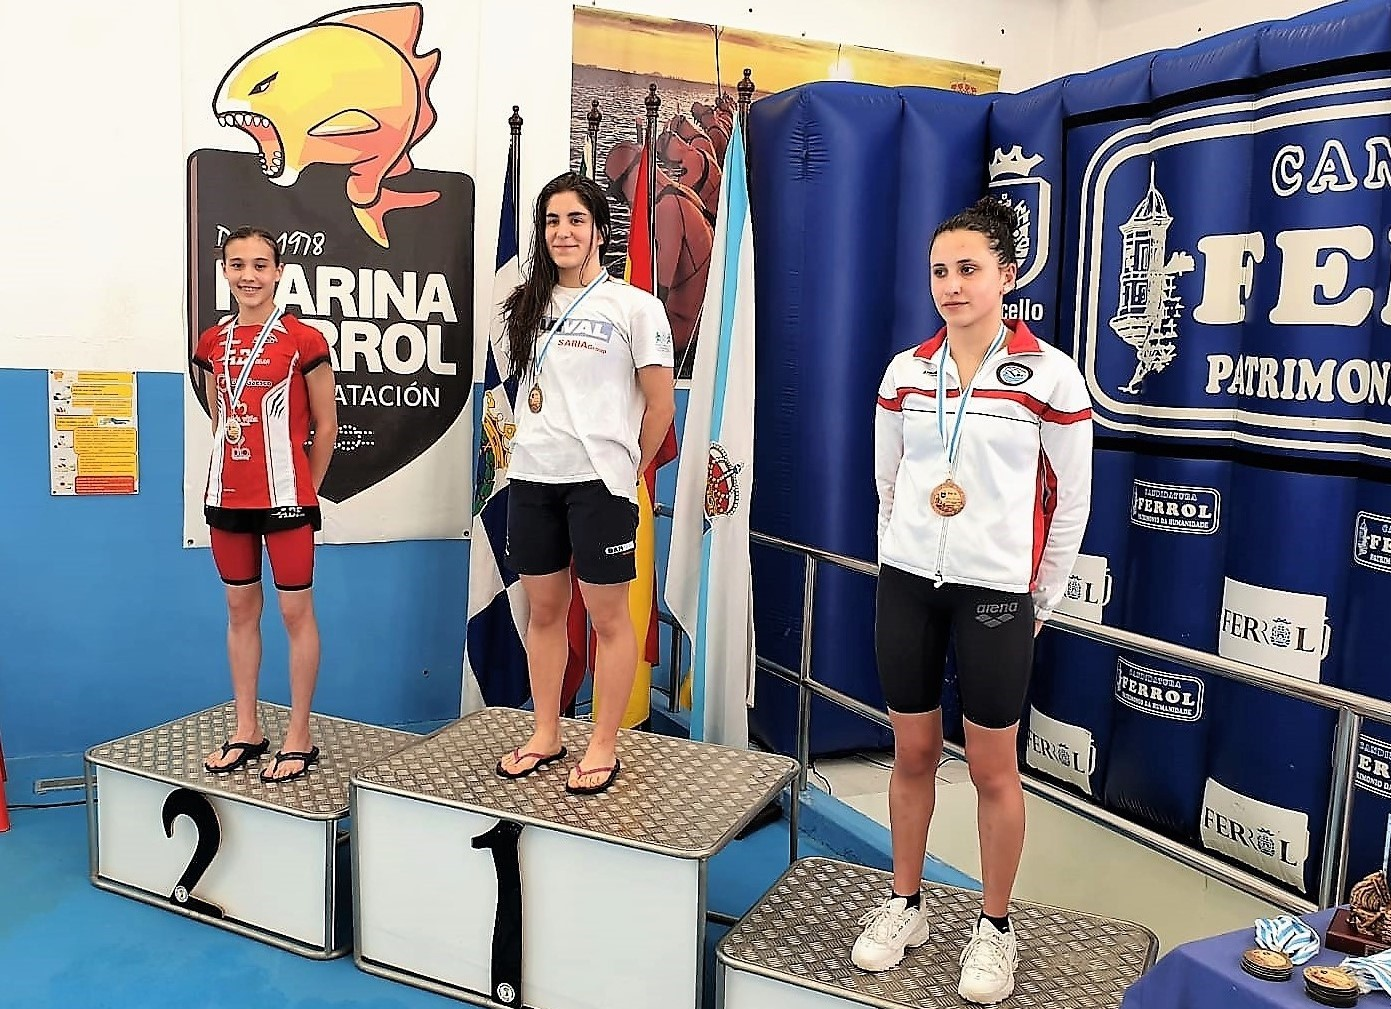 2 Medallas, 2 topes nacionais e 1 récord do club no Juan Varela